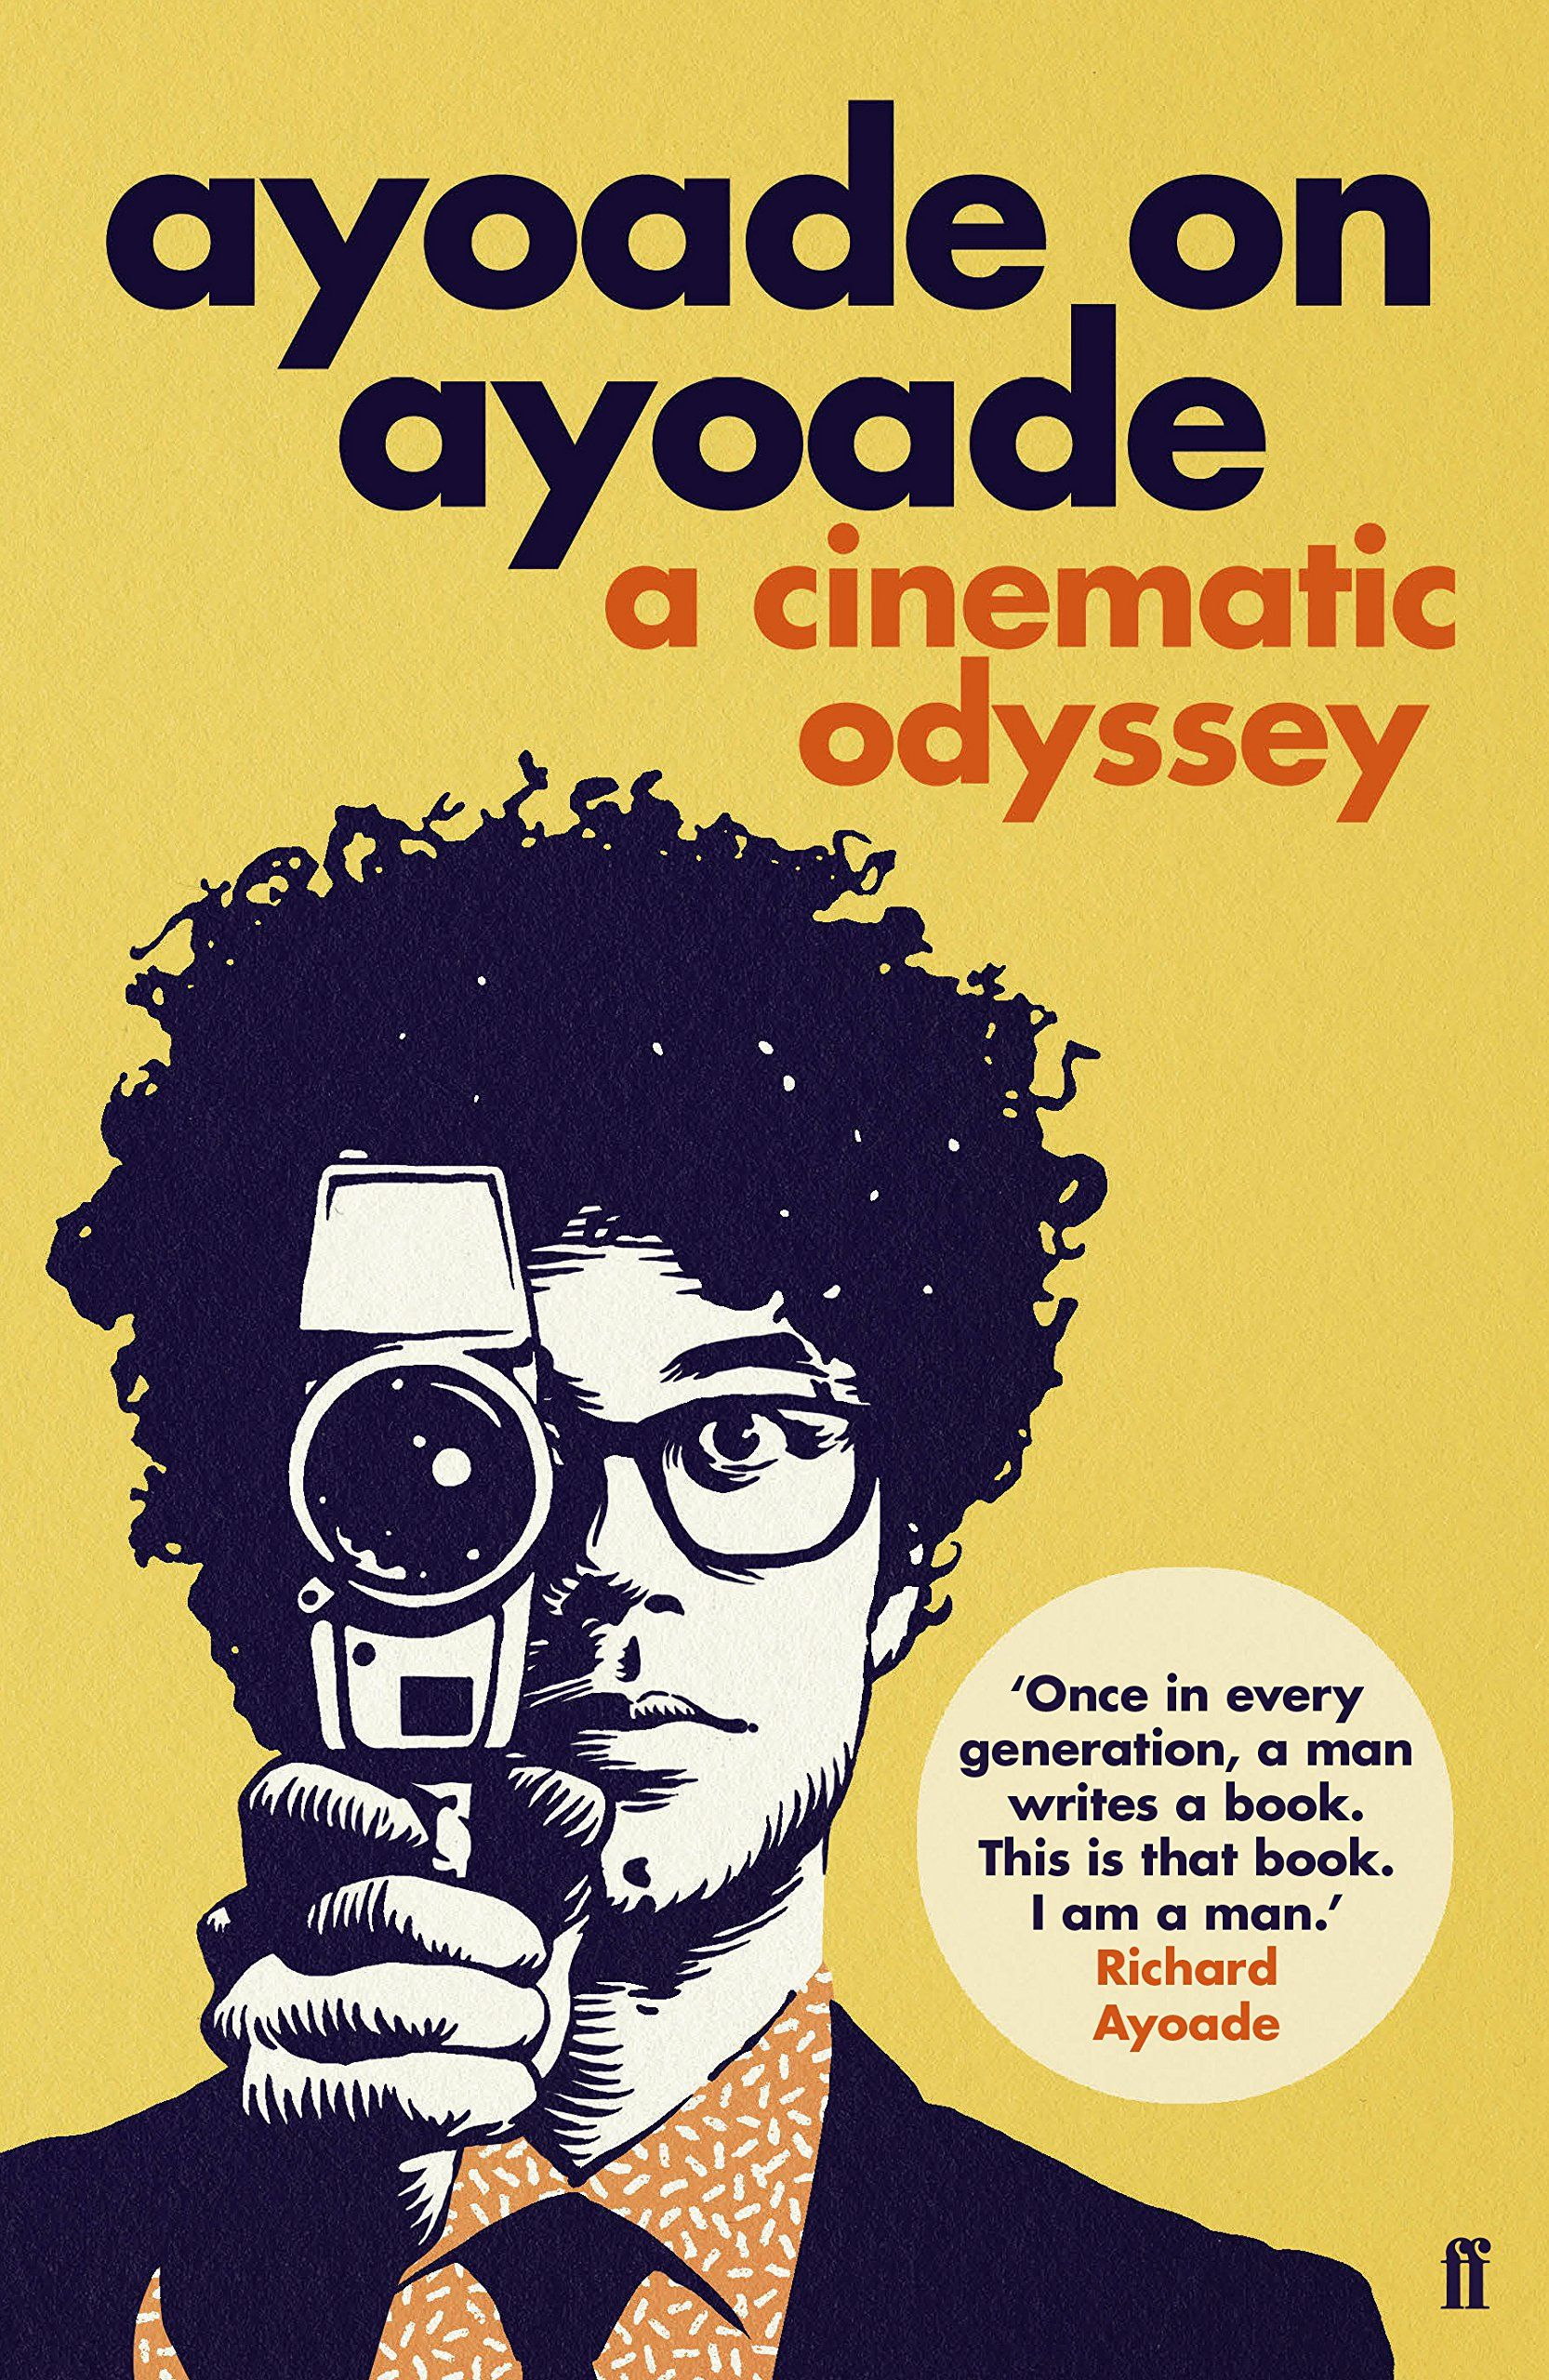 Ayoade on Ayoade: Amazon.co.uk: Richard Ayoade: Books